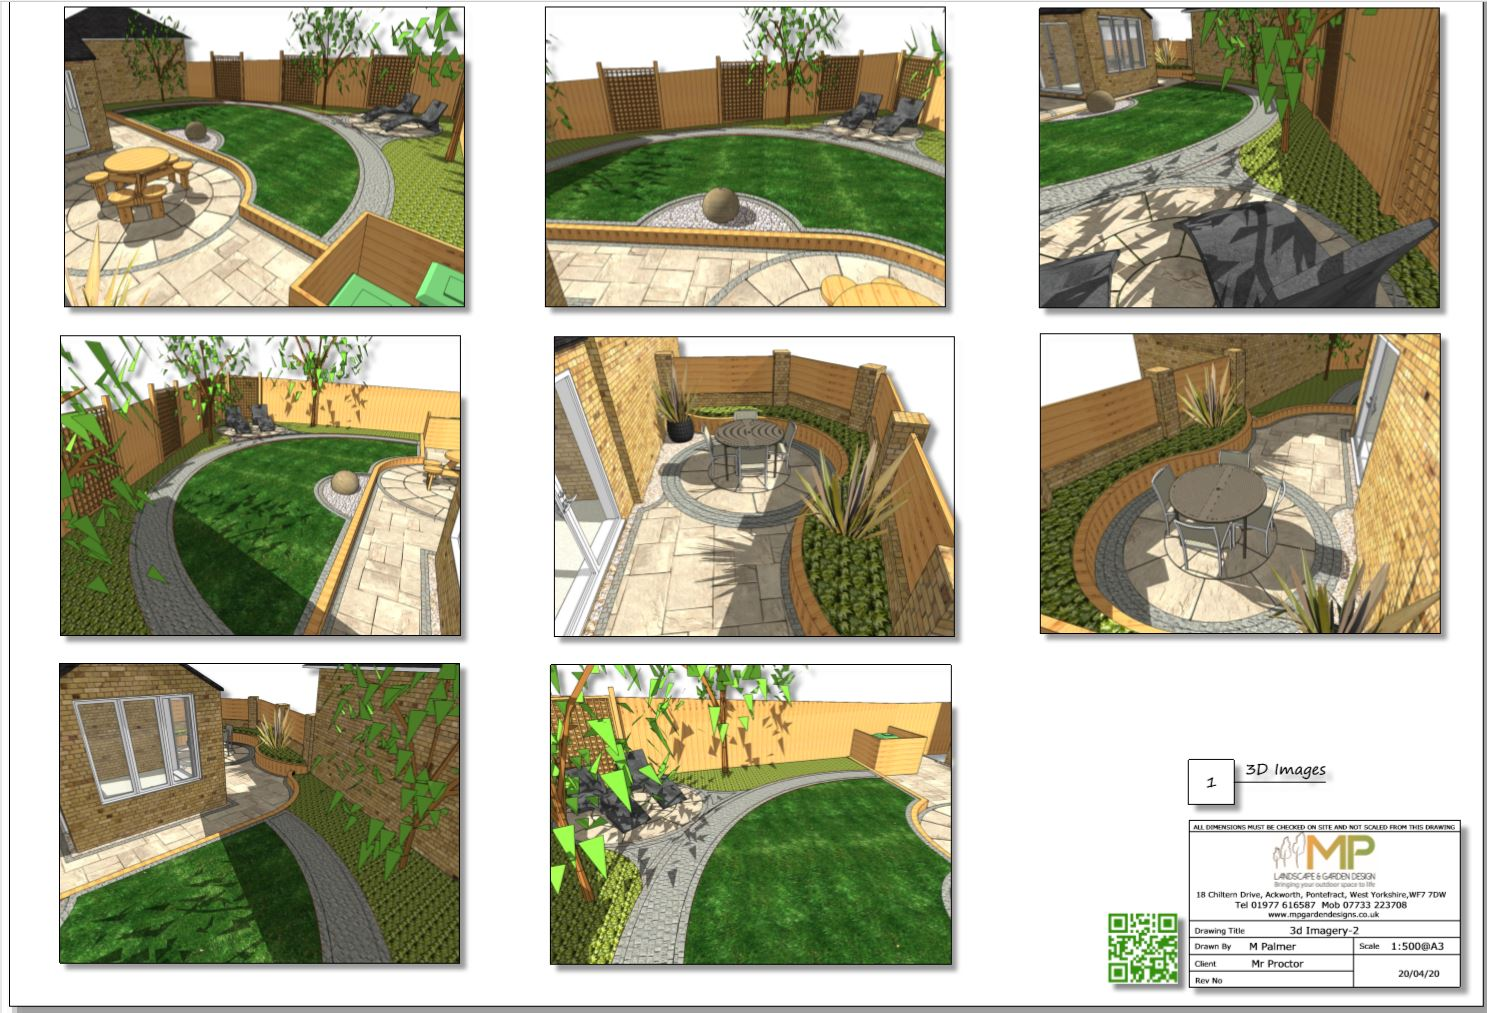 8, Concept plan-2 3D images for a rear garden in South Kirkby